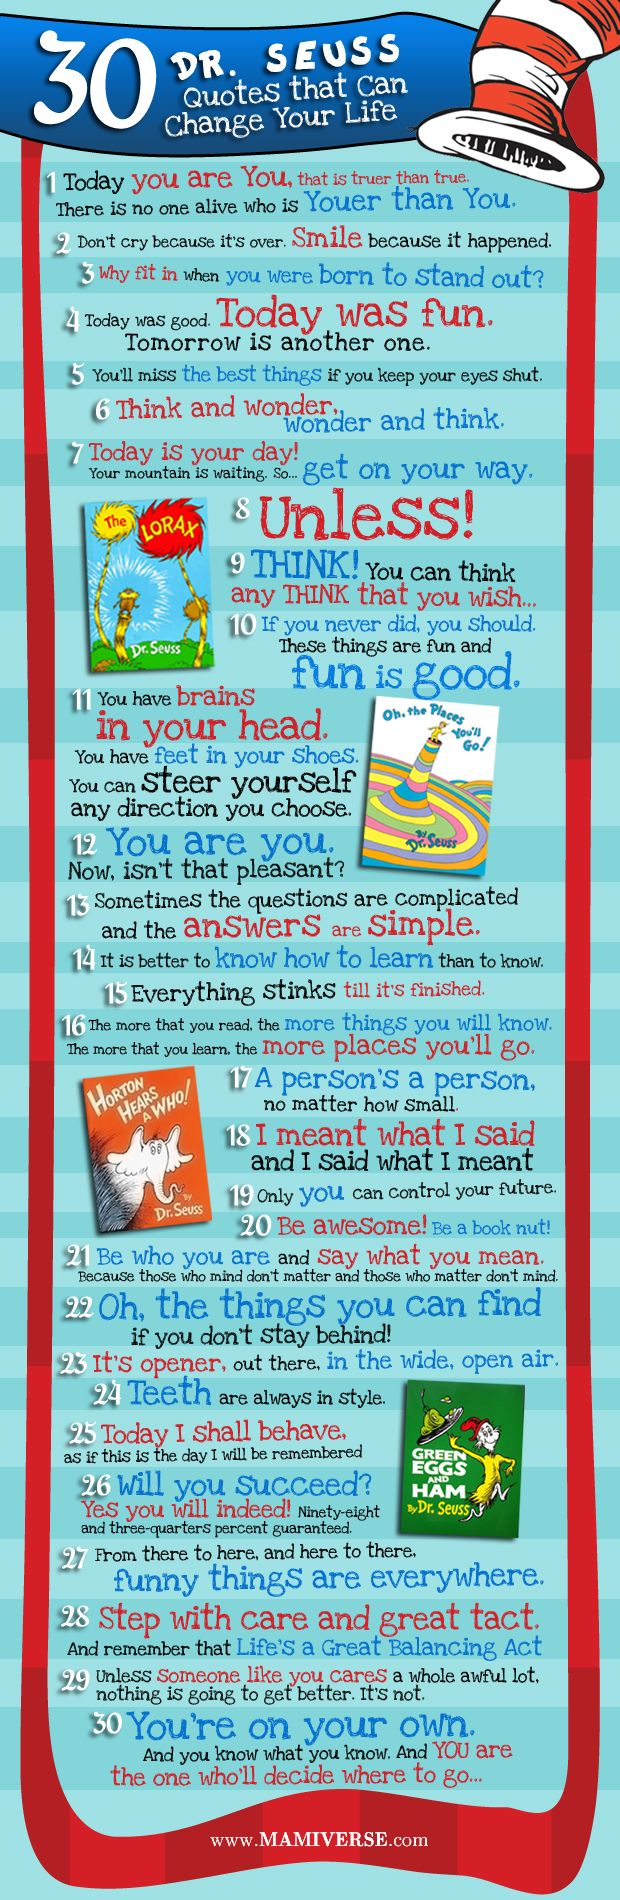 Dr. Seuss can change your life: 30 Dr., Life Lessons, Menu, Seussquotes, Drseuss, Dr. Suess Quotes, Dr Suess, Dr. Seuss Quotes, Kid